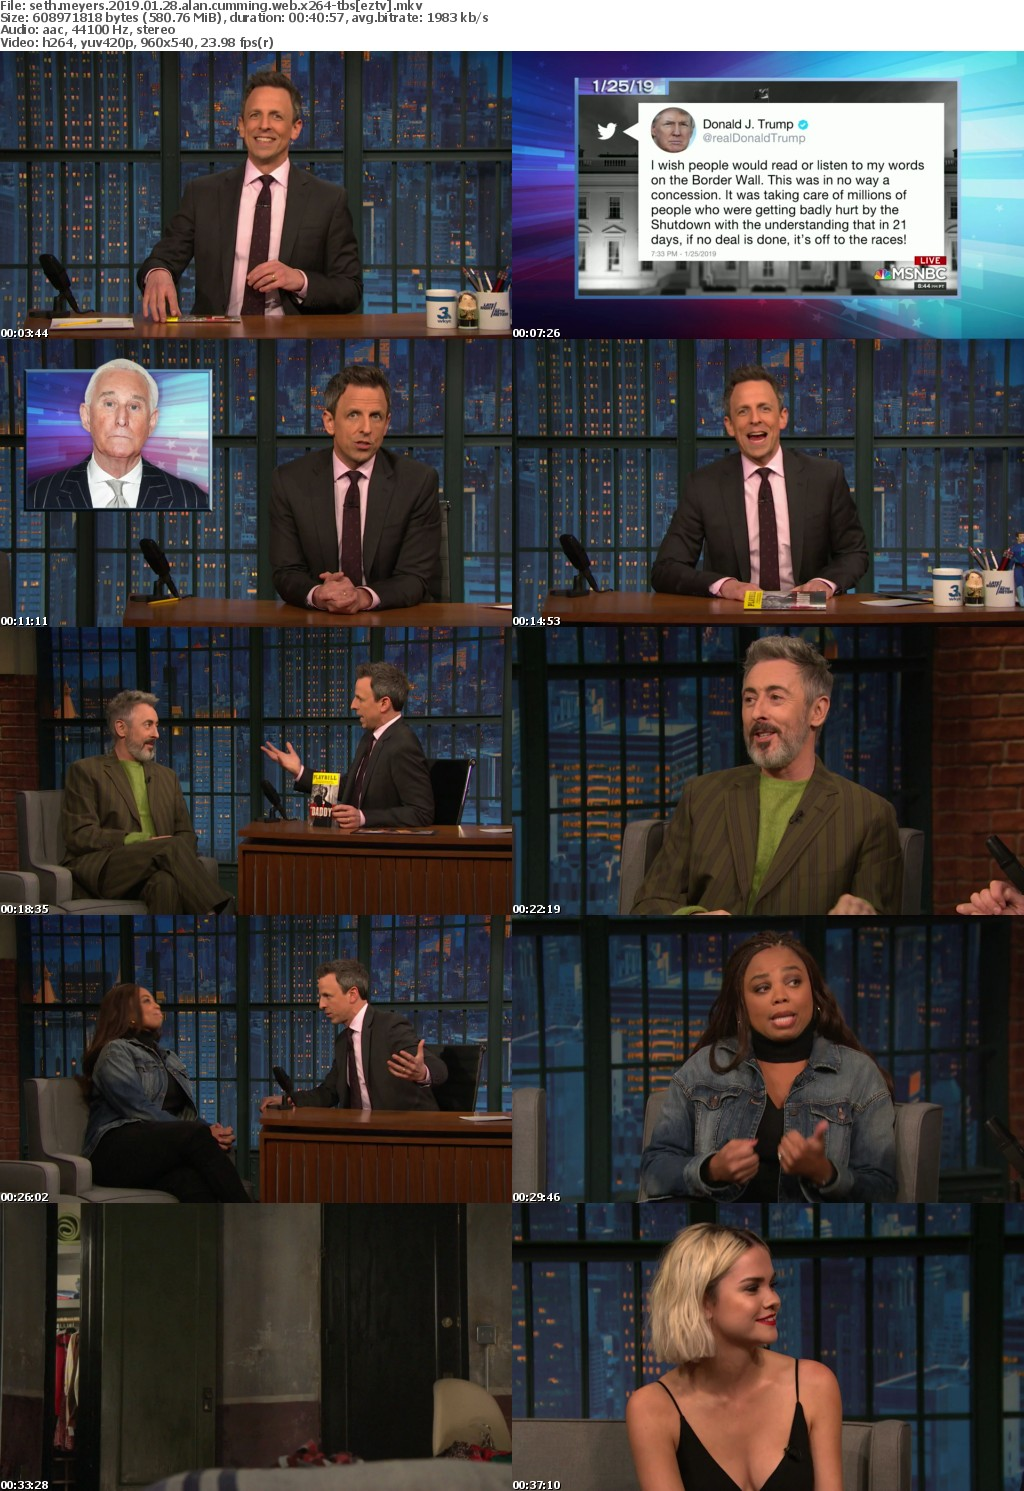 Seth Meyers (2019) 01 28 Alan Cumming WEB x264-TBS